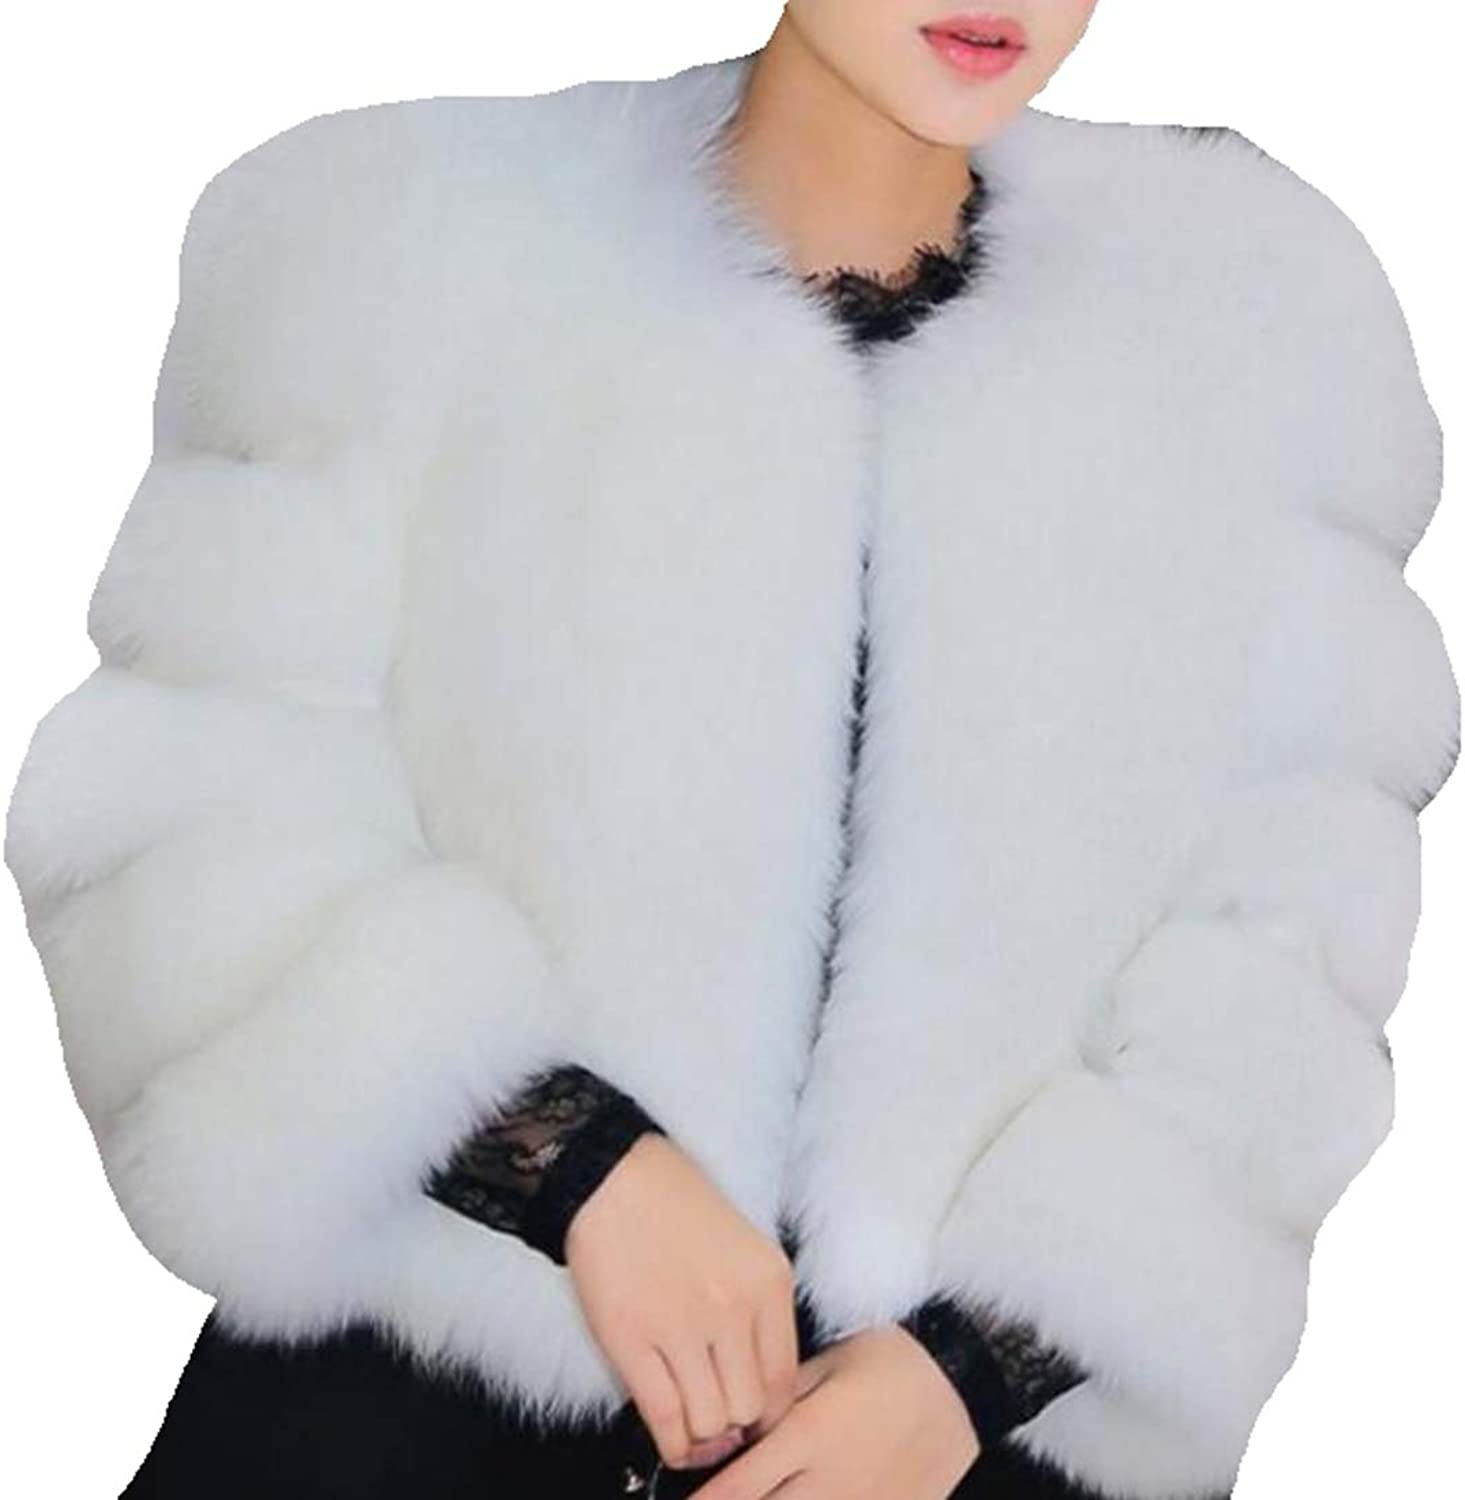 Esast Women Faux Fur Coat Long Sleeve Winter Warm VNeck Fluffy Wrap Jacket Outwear